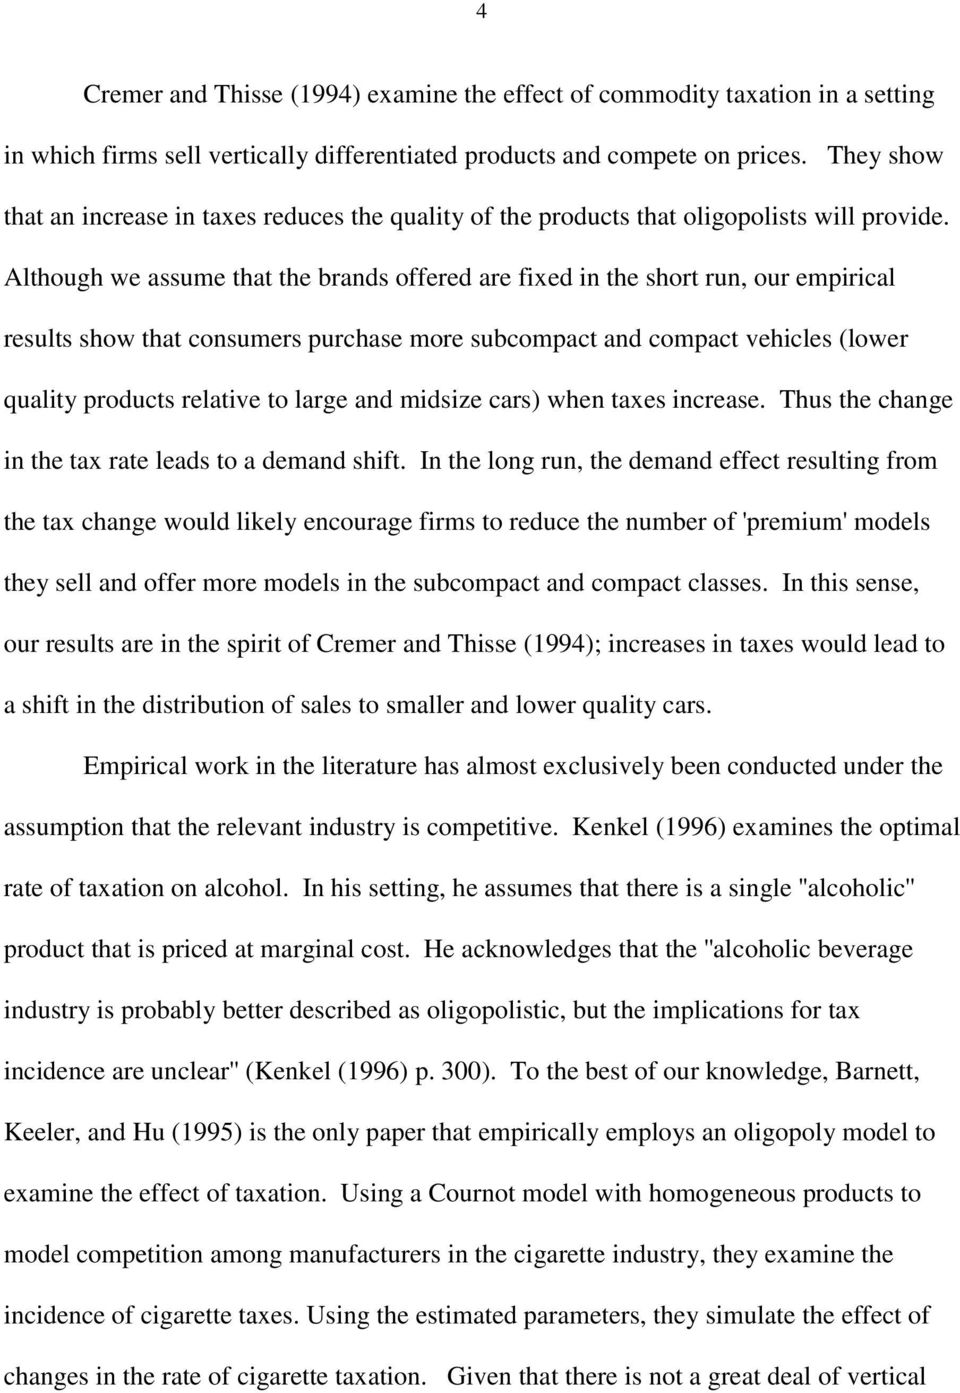 Although we assume that the brands offered are fixed in the short run, our empirical results show that consumers purchase more subcompact and compact vehicles (lower quality products relative to